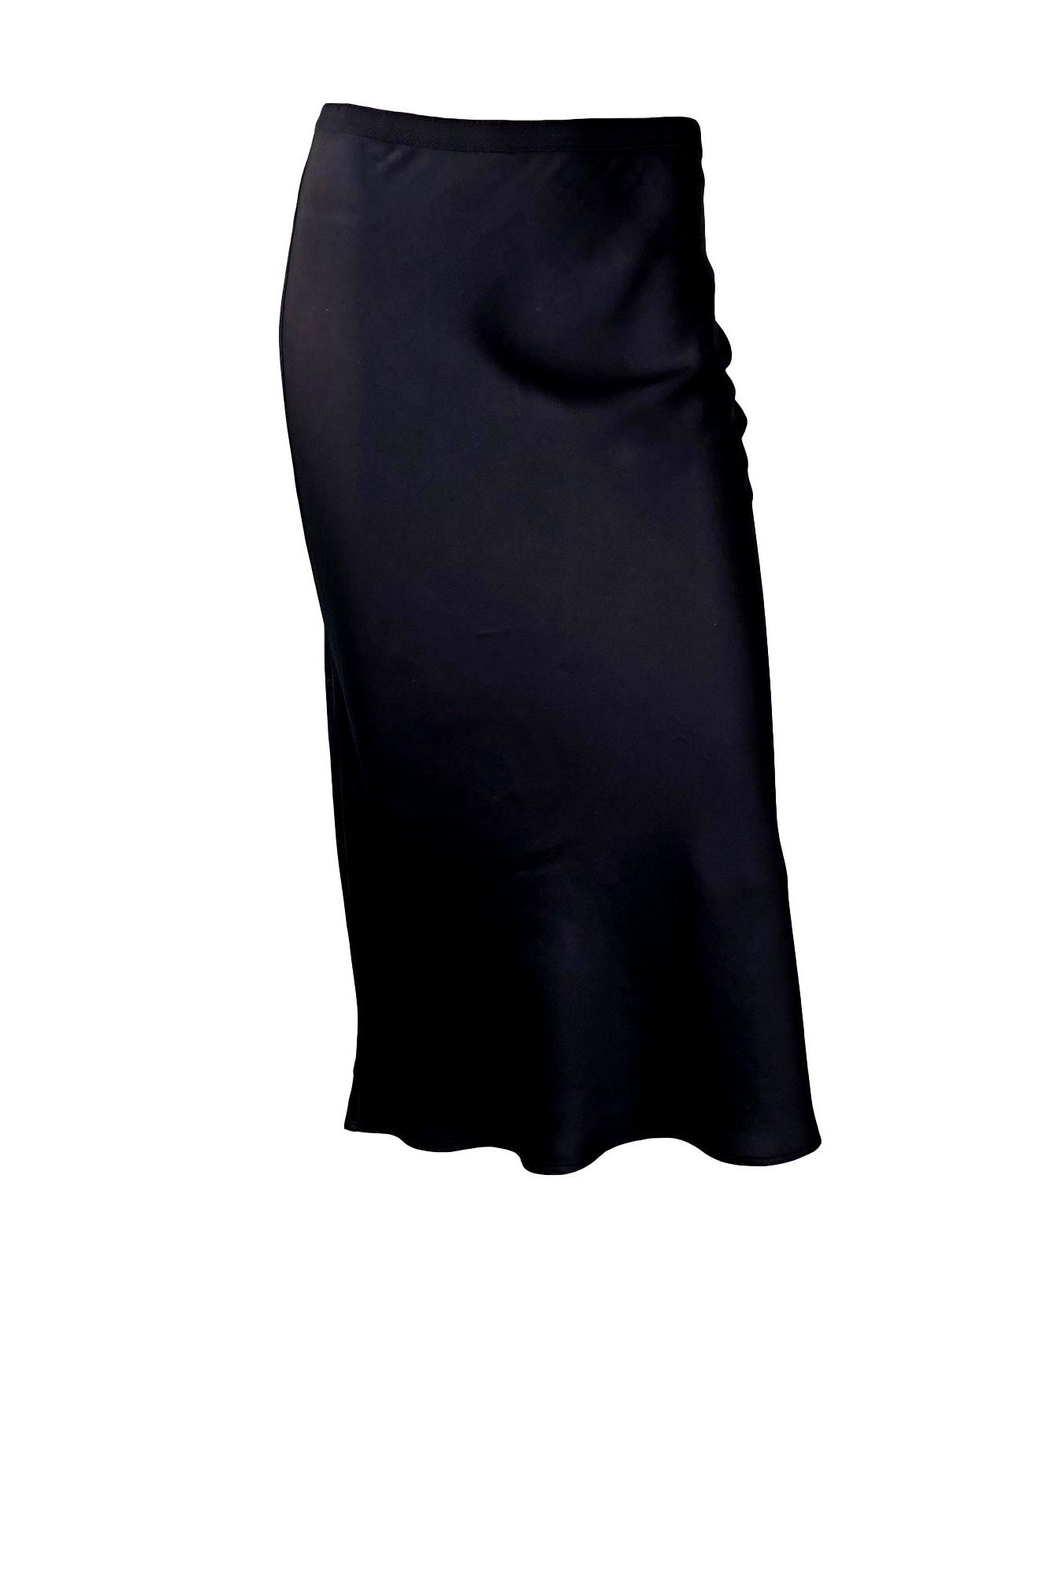 Anine Bing Bar Silk Skirt - Front Cropped Image